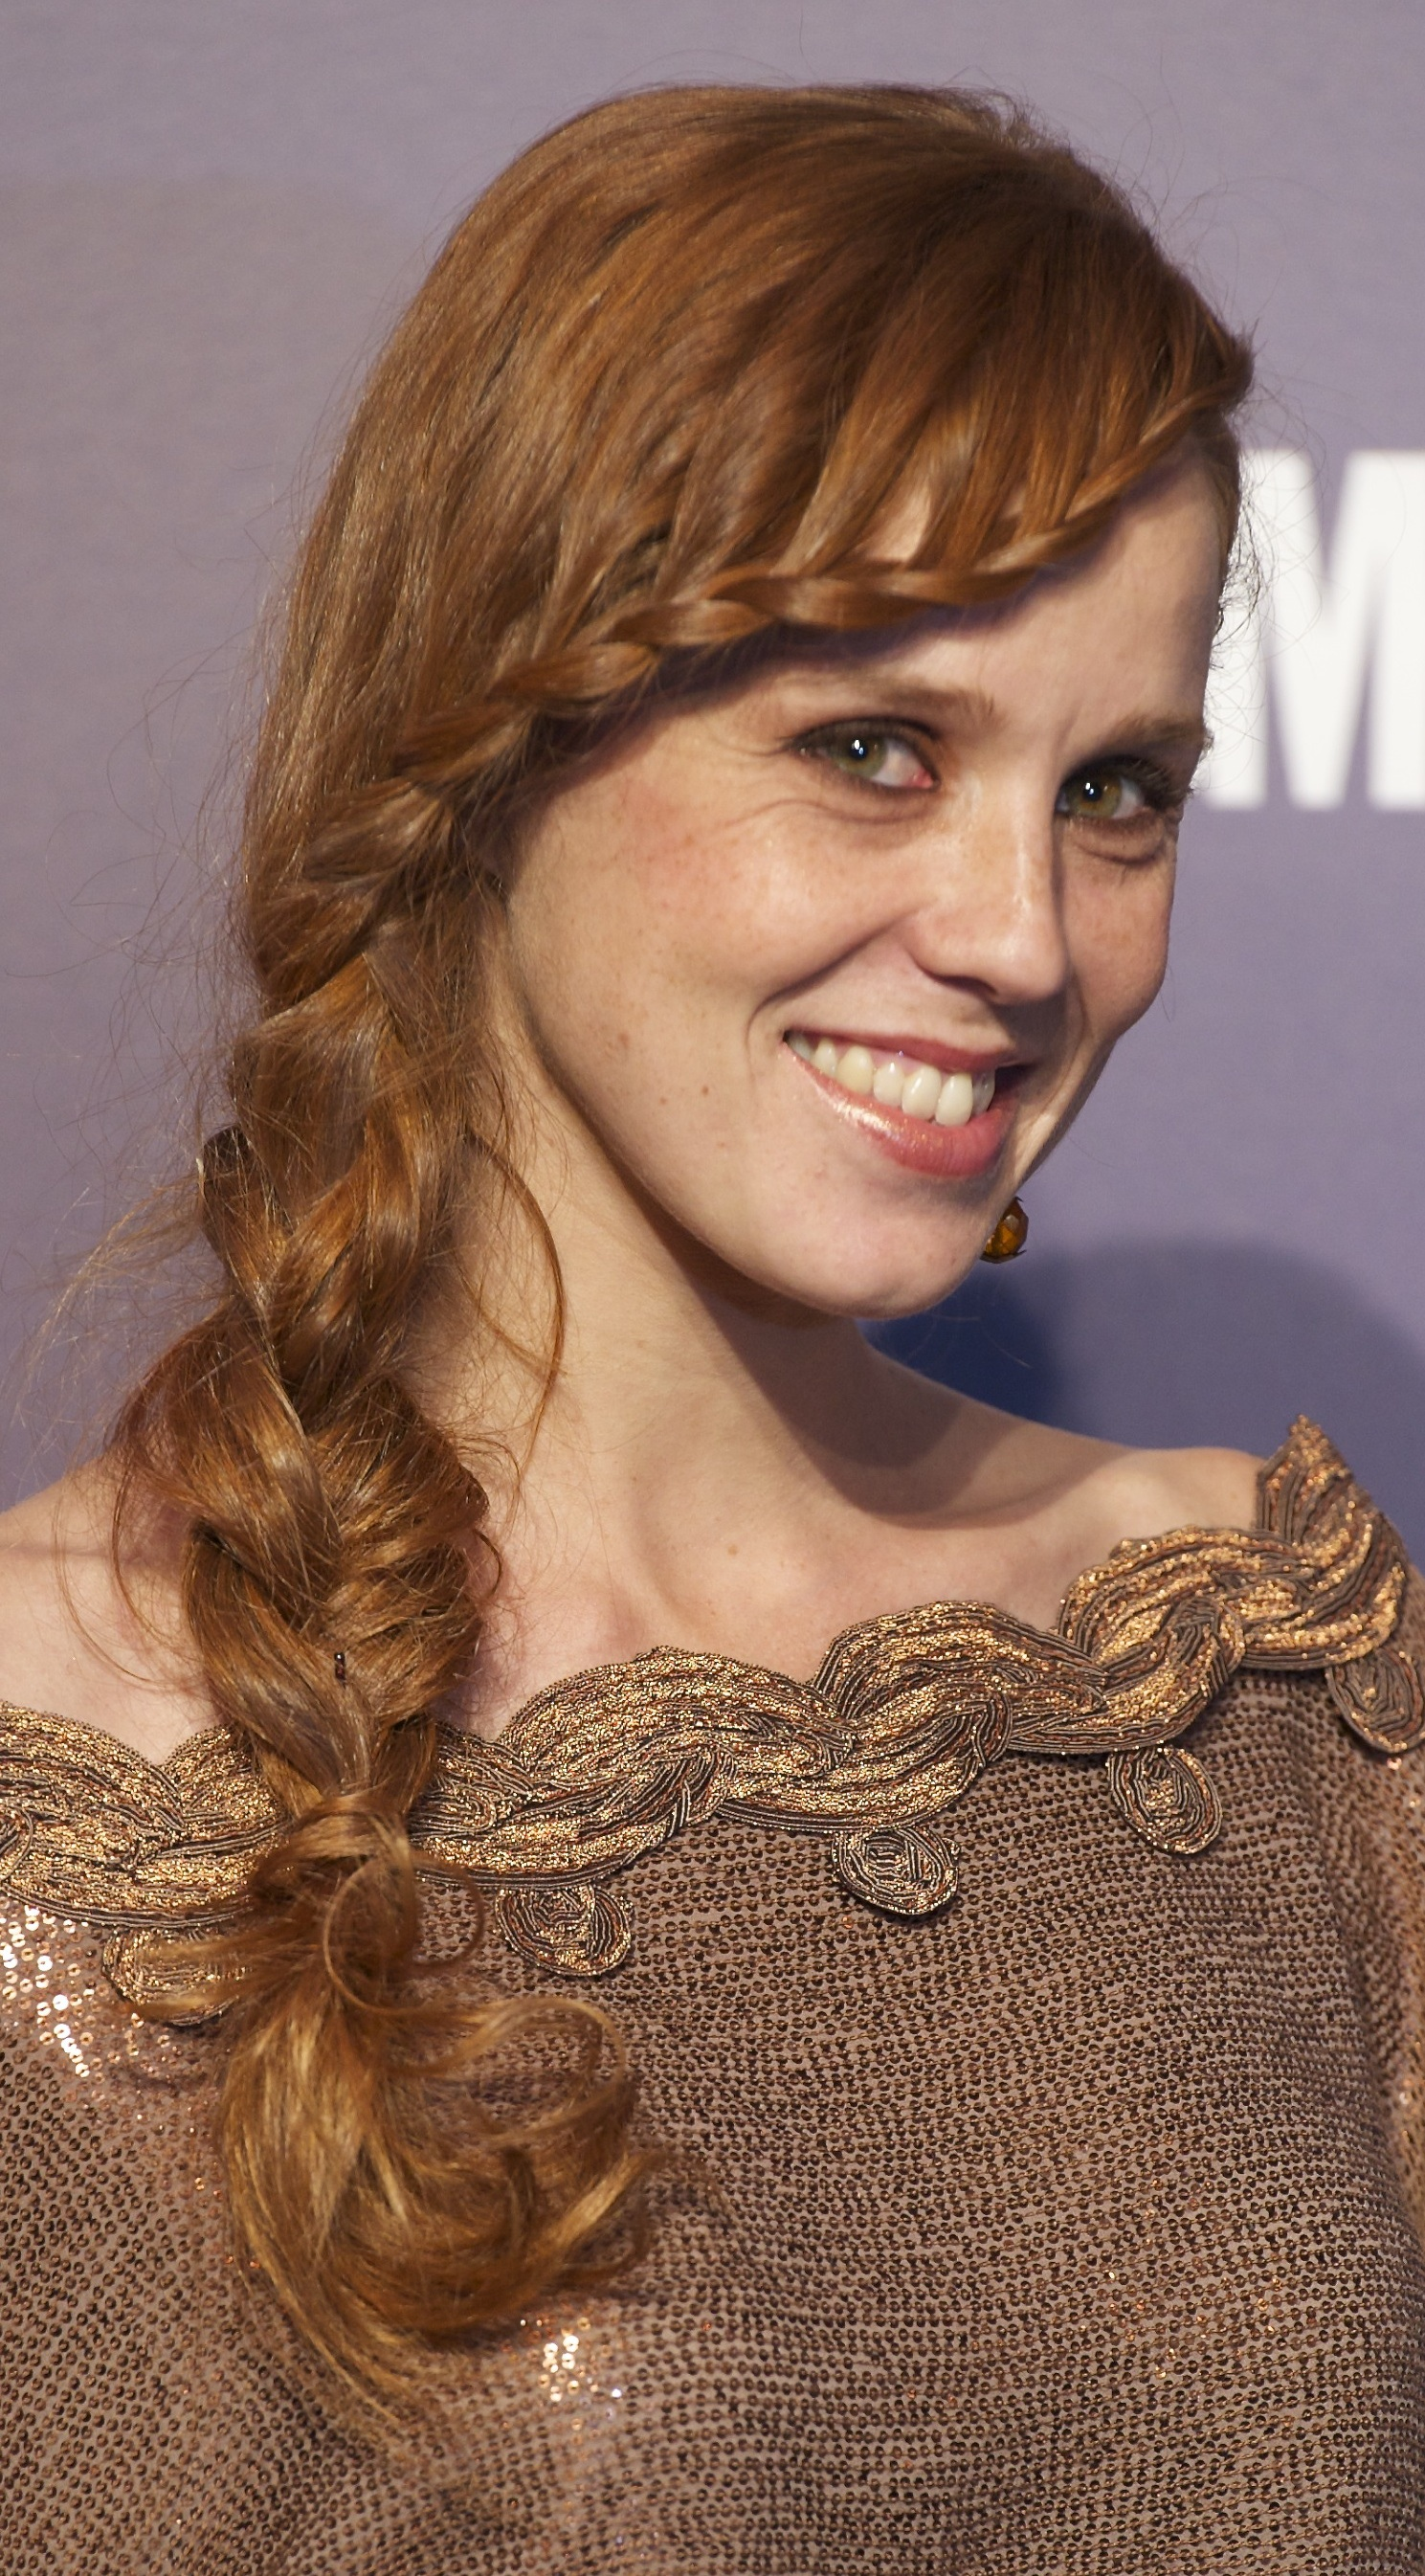 'Cosmopolitan Fun Fearless Female' Awards 2011 in Madrid